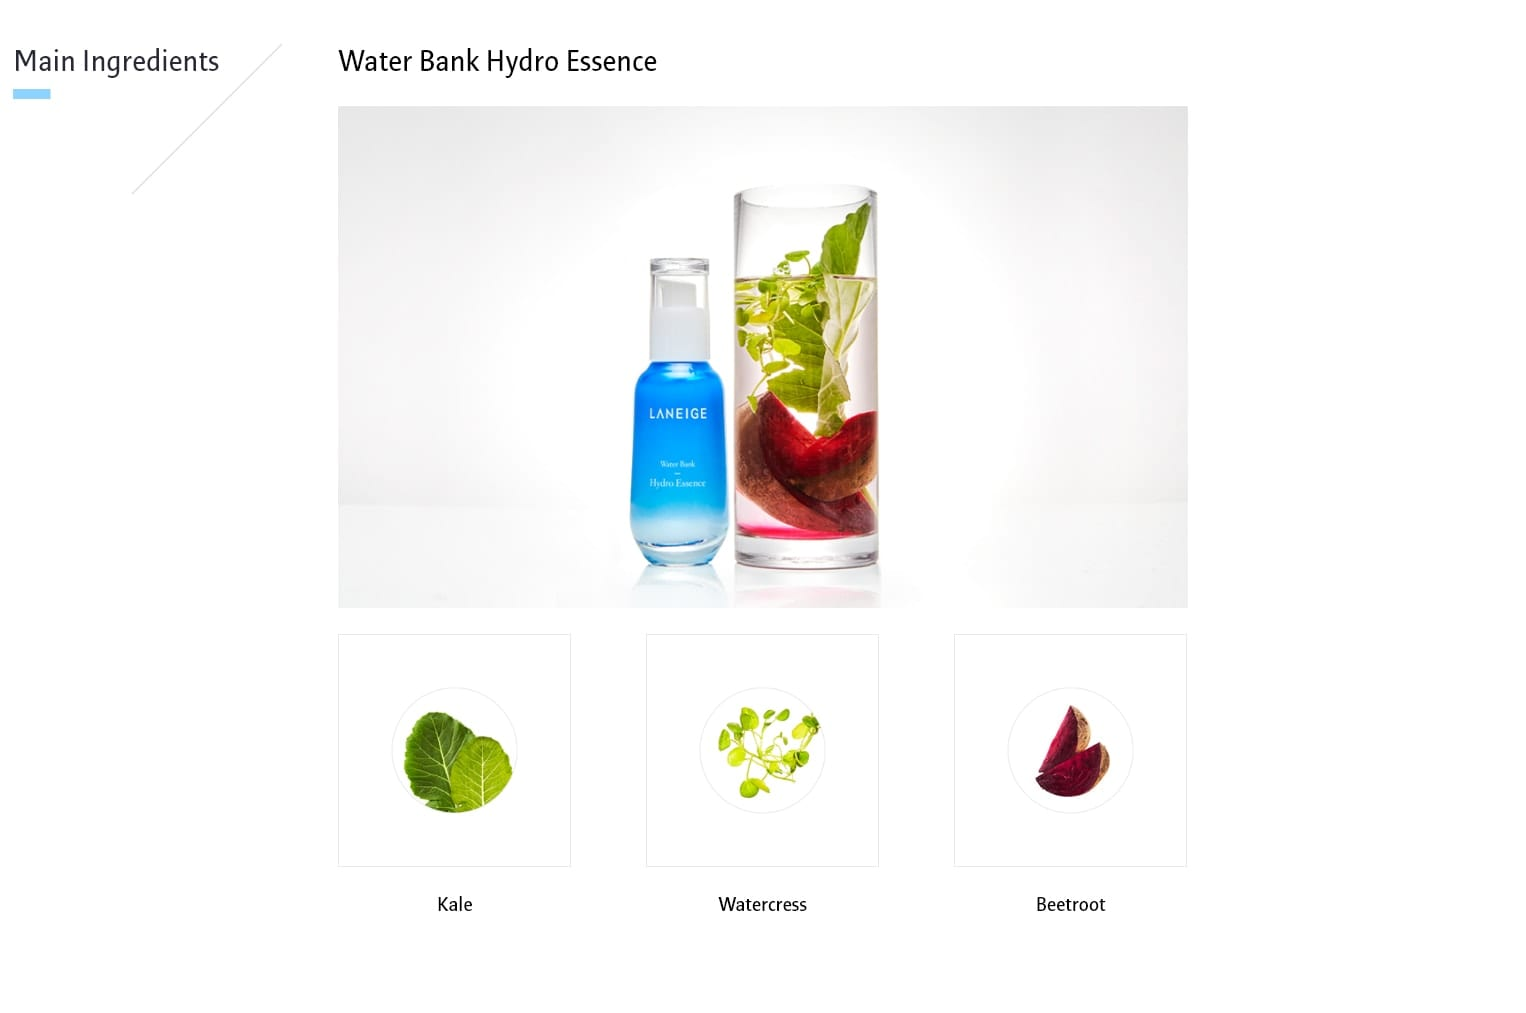 Laneige Water Bank Hydro Essence - ingredients